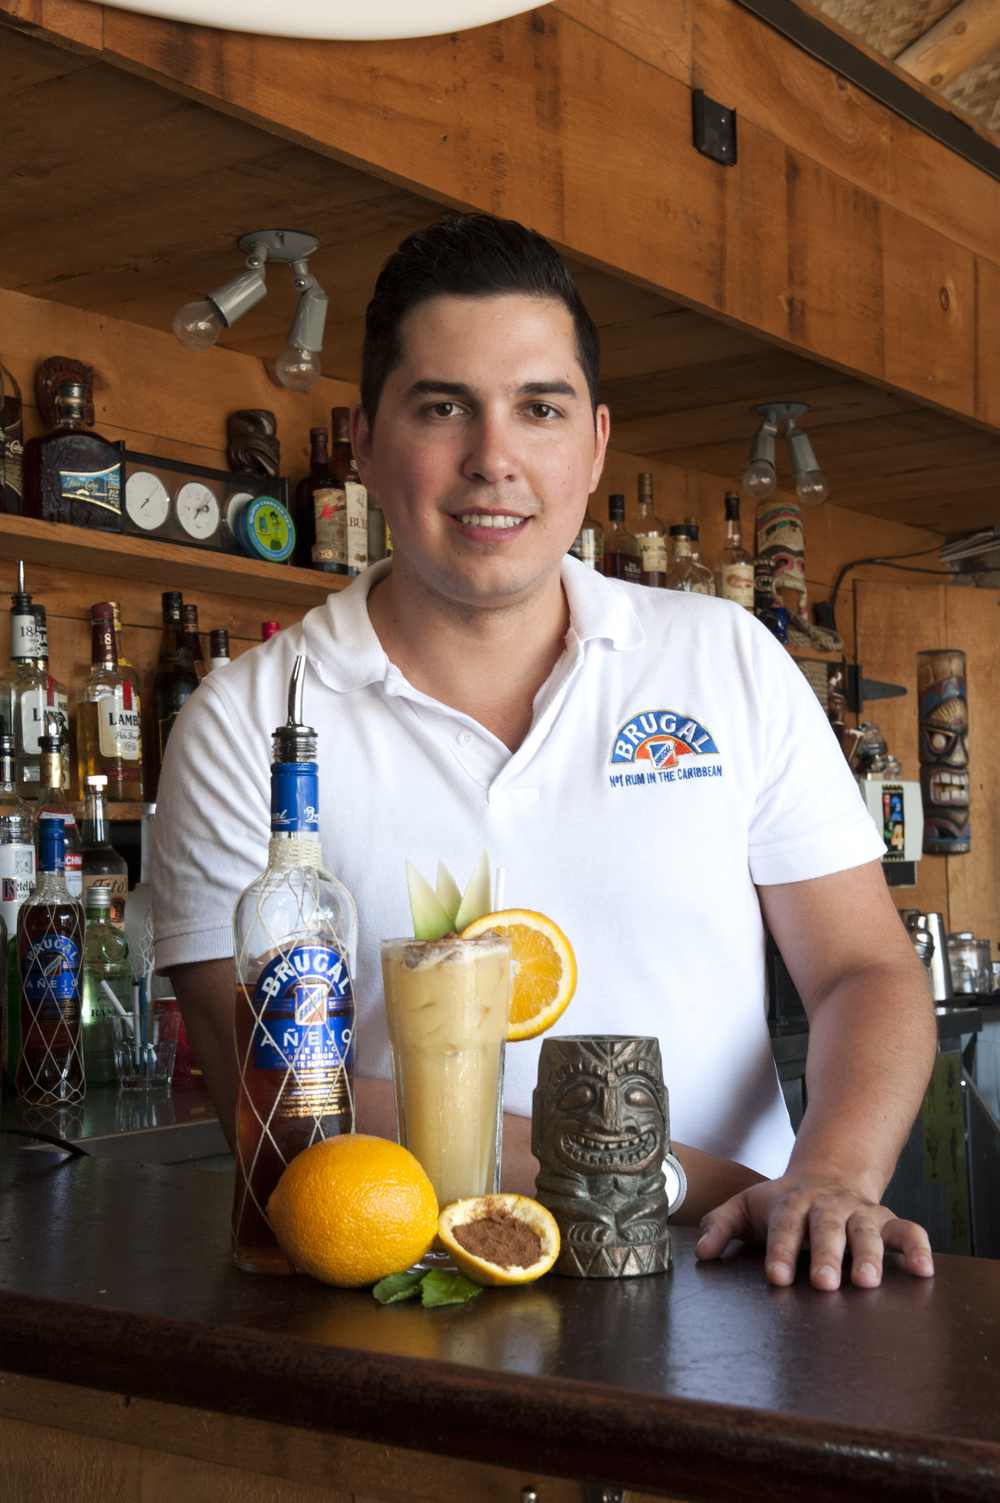 Nicolas Villalon, ambassador of Eddington pictured with a Brugal Painkiller. Photo taken at The Tiki Bar, located on 542 Queen Street W, Toronto.